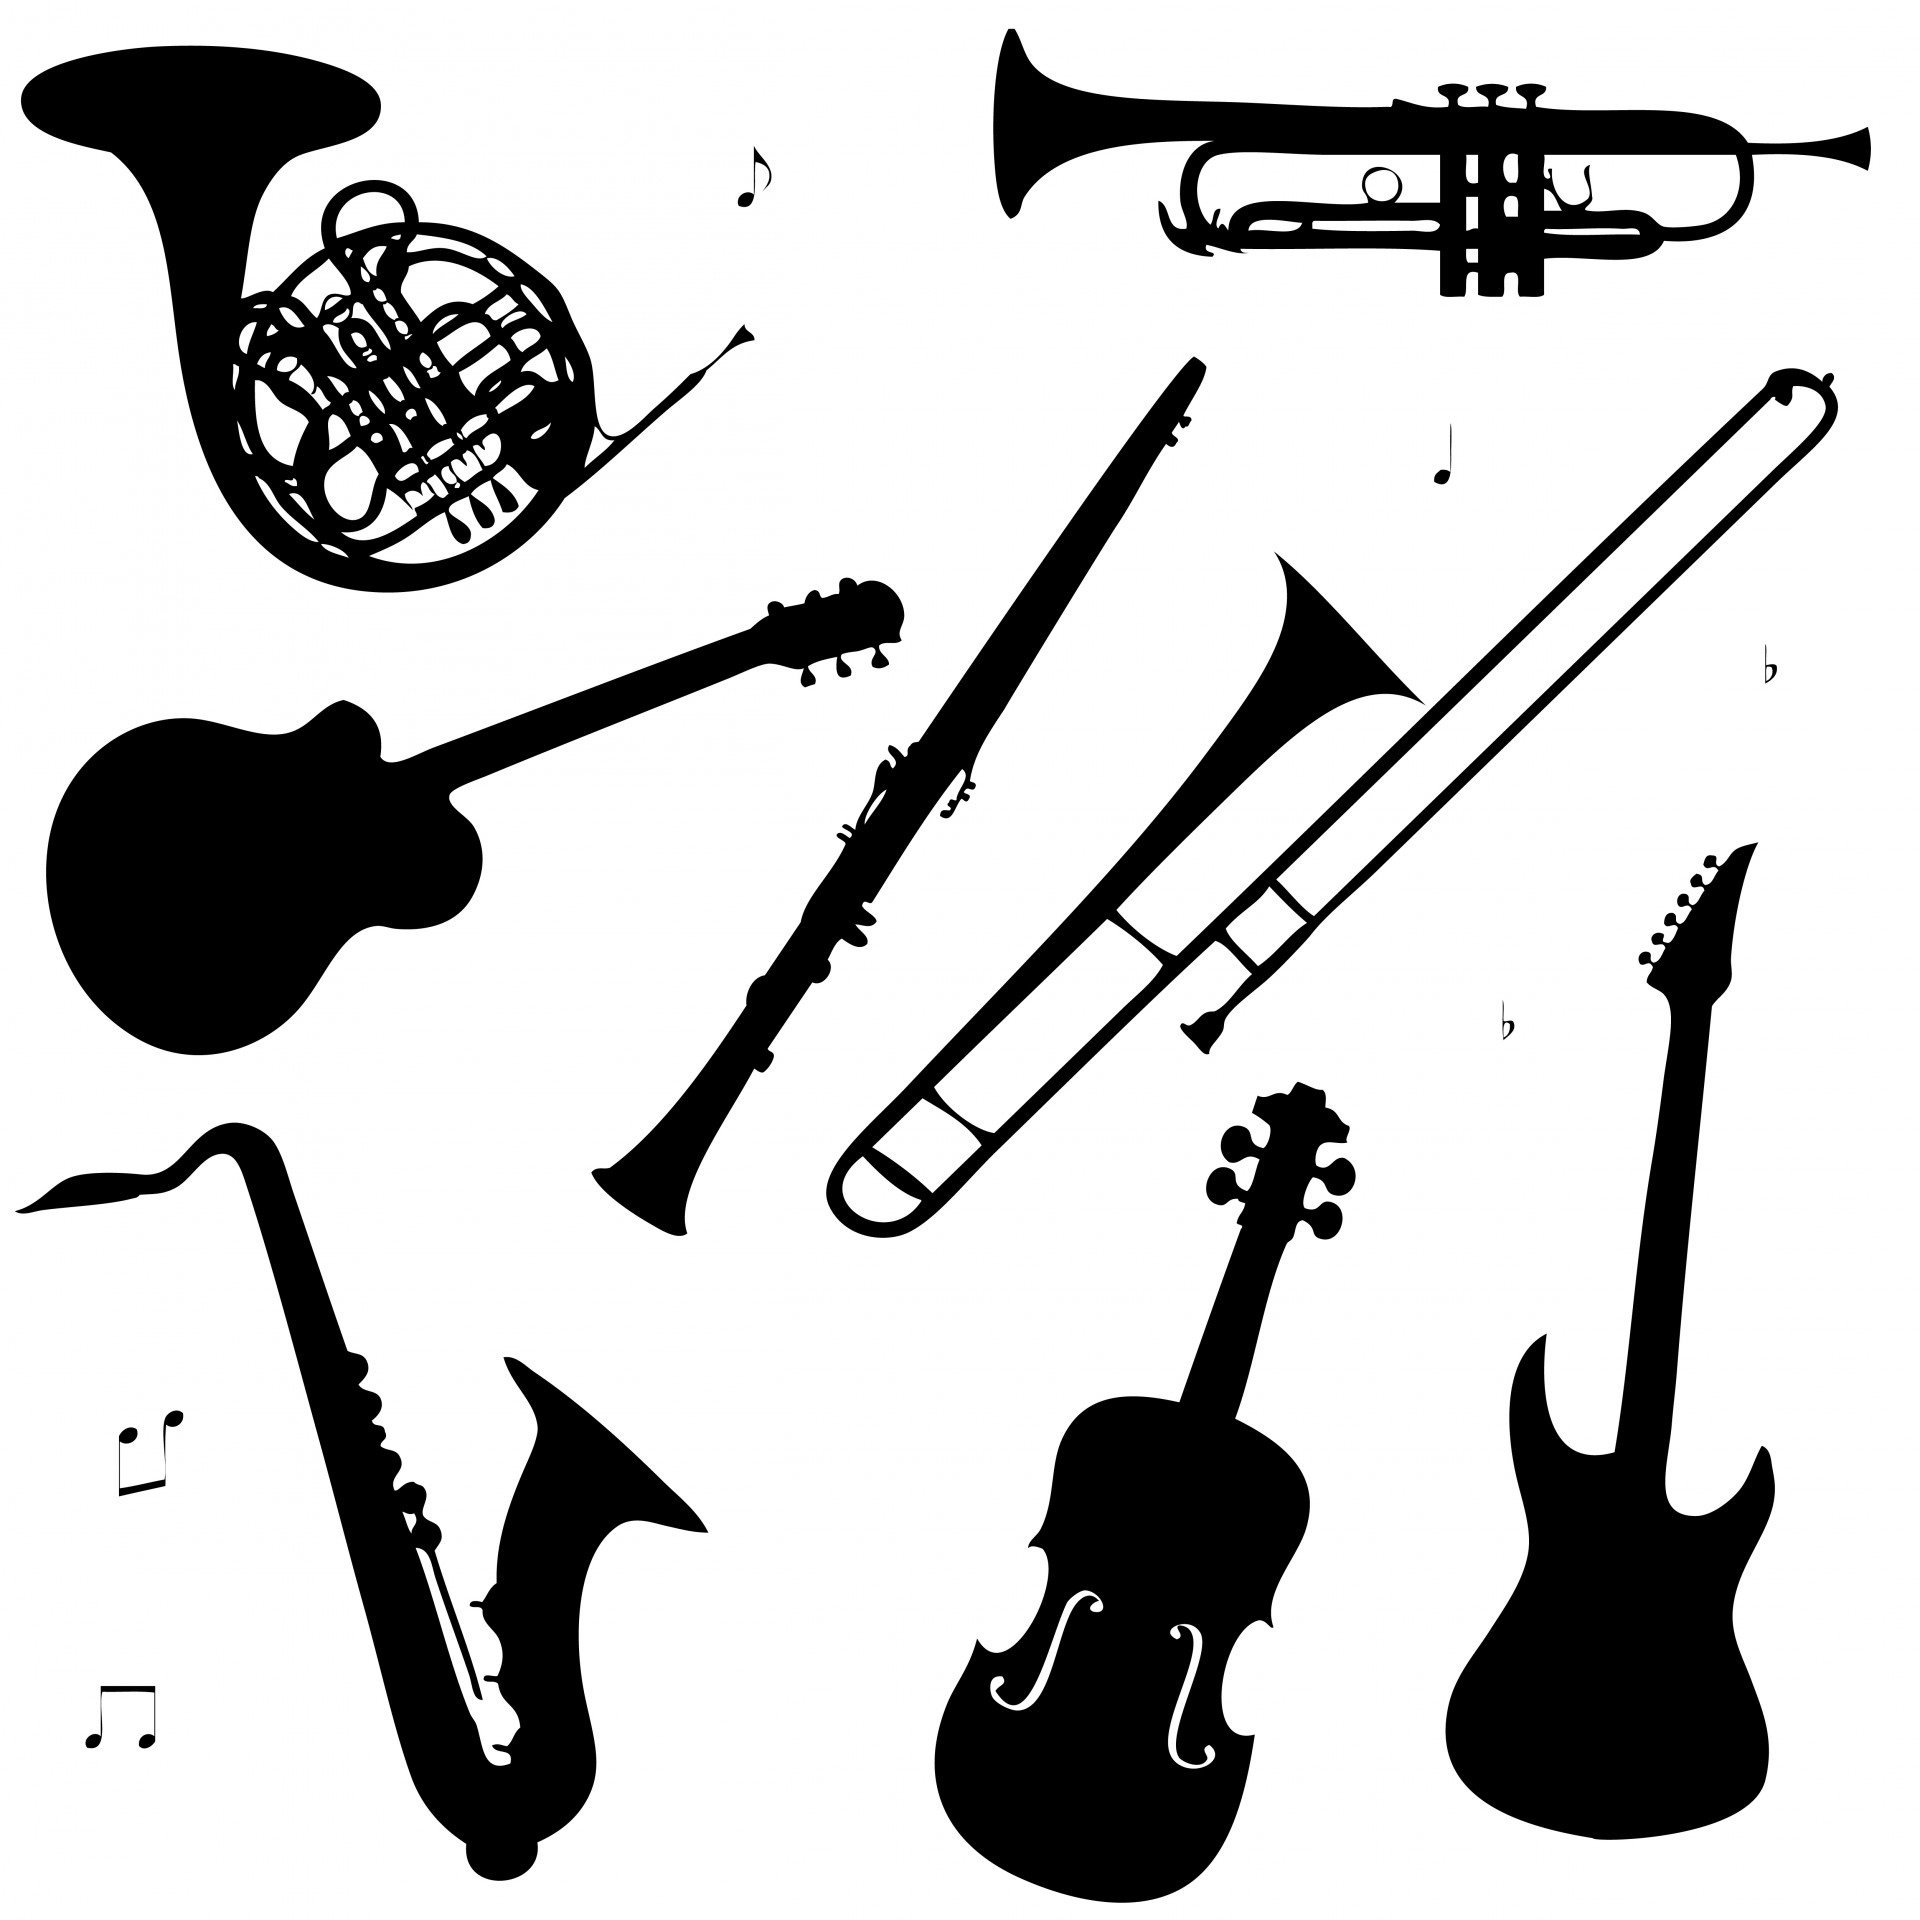 Instruments clipart. Musical free stock photo